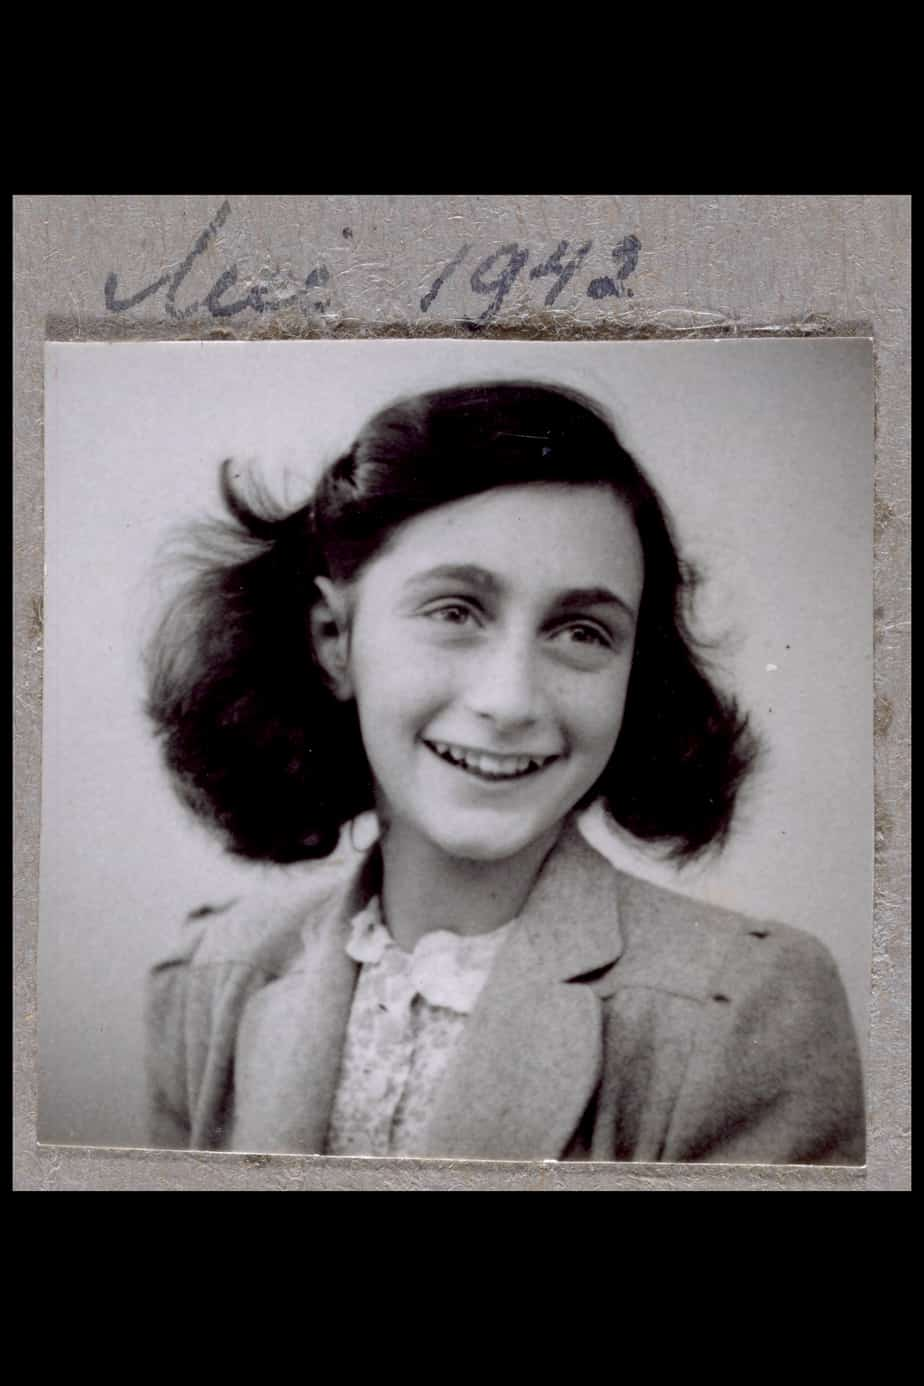 (c) ANNE FRANK FONDS, Basel-Anne Frank, Stichting, Amsterdam